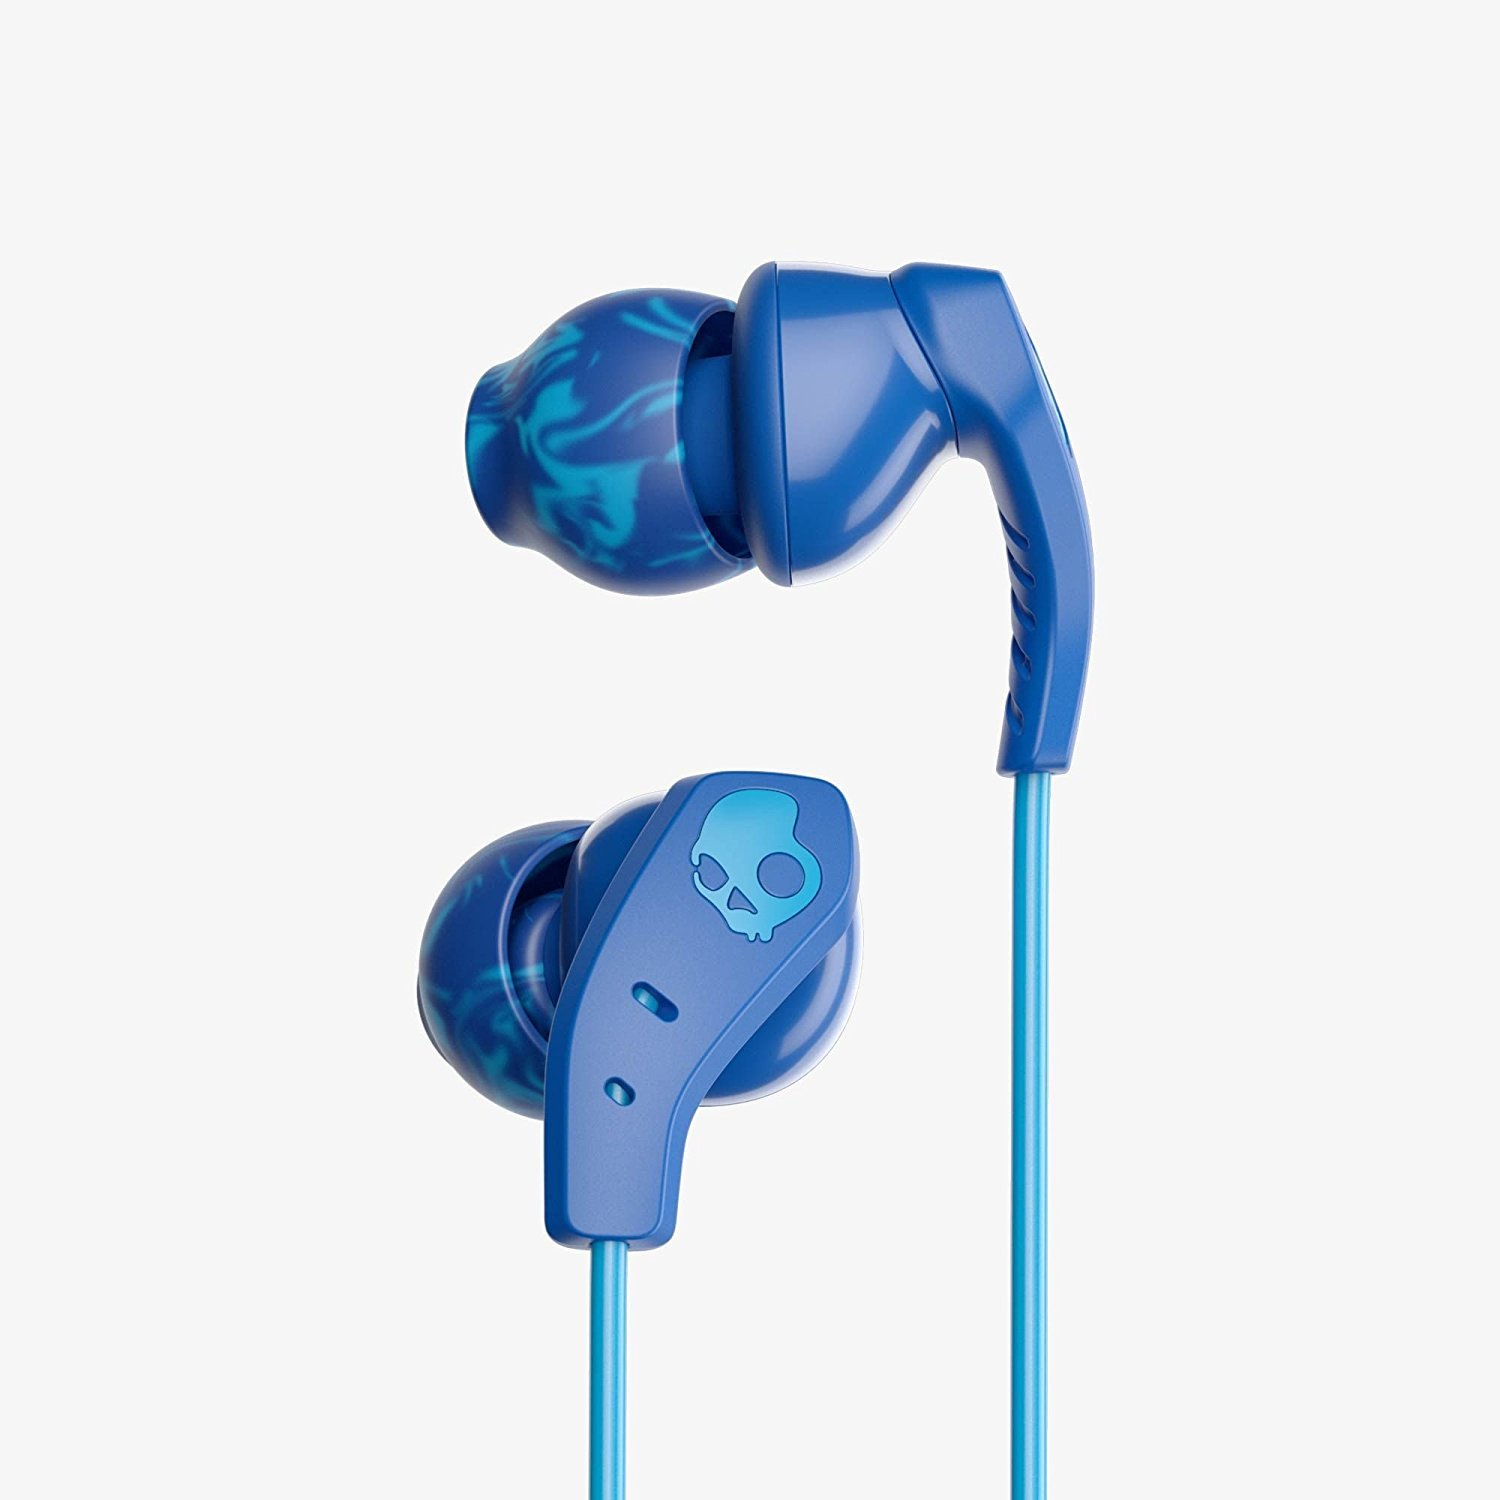 428cfeddd63 Skullcandy Method Sweat Resistant Sport Earbud with In-Line Microphone and  Remote, Lightweight and Secure In-Ear Fit for Running and Exercise, ...